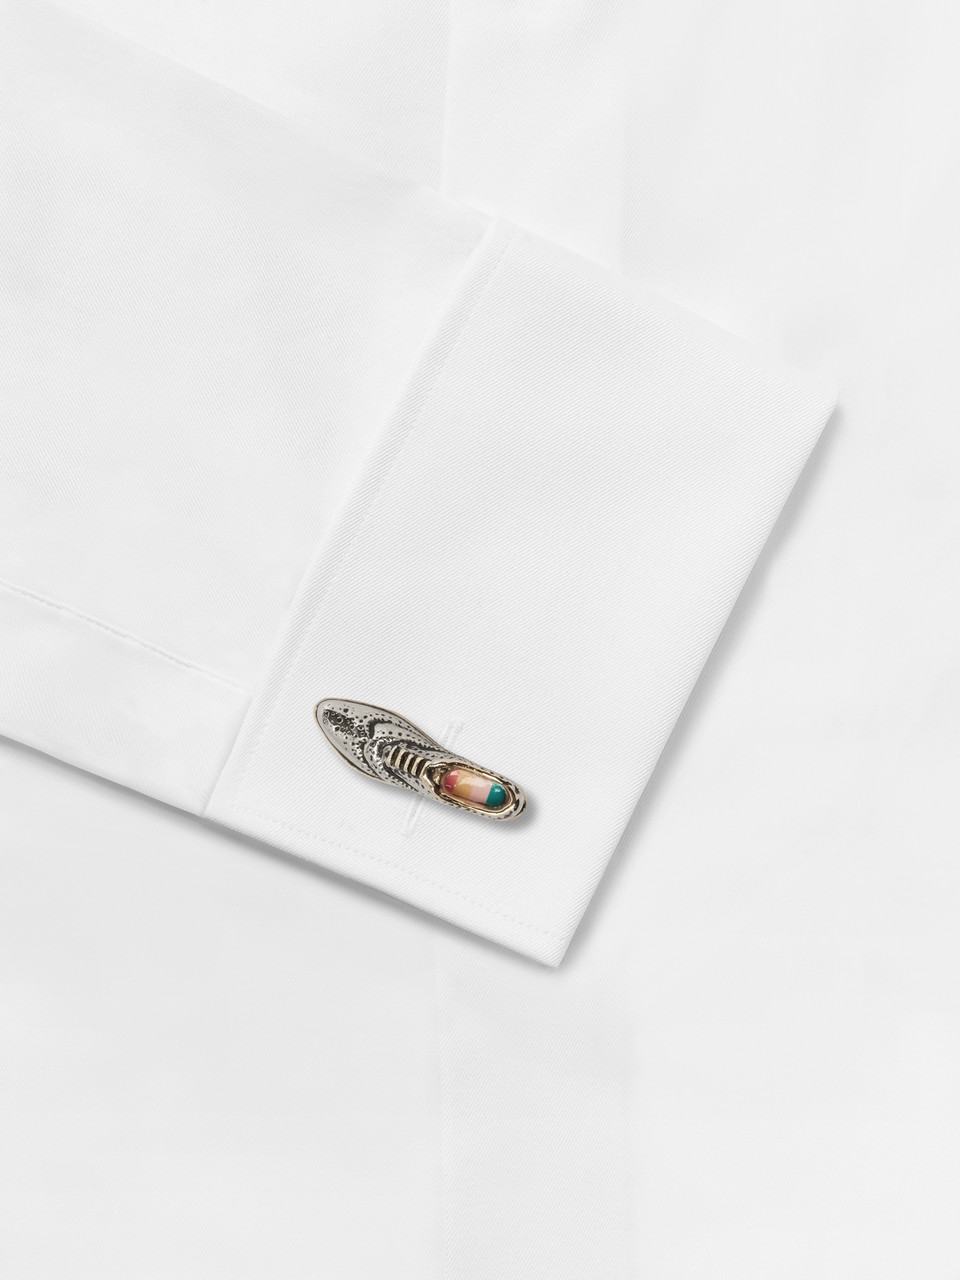 Paul Smith Brogue Enamel, Silver and Gold-Tone Cufflinks